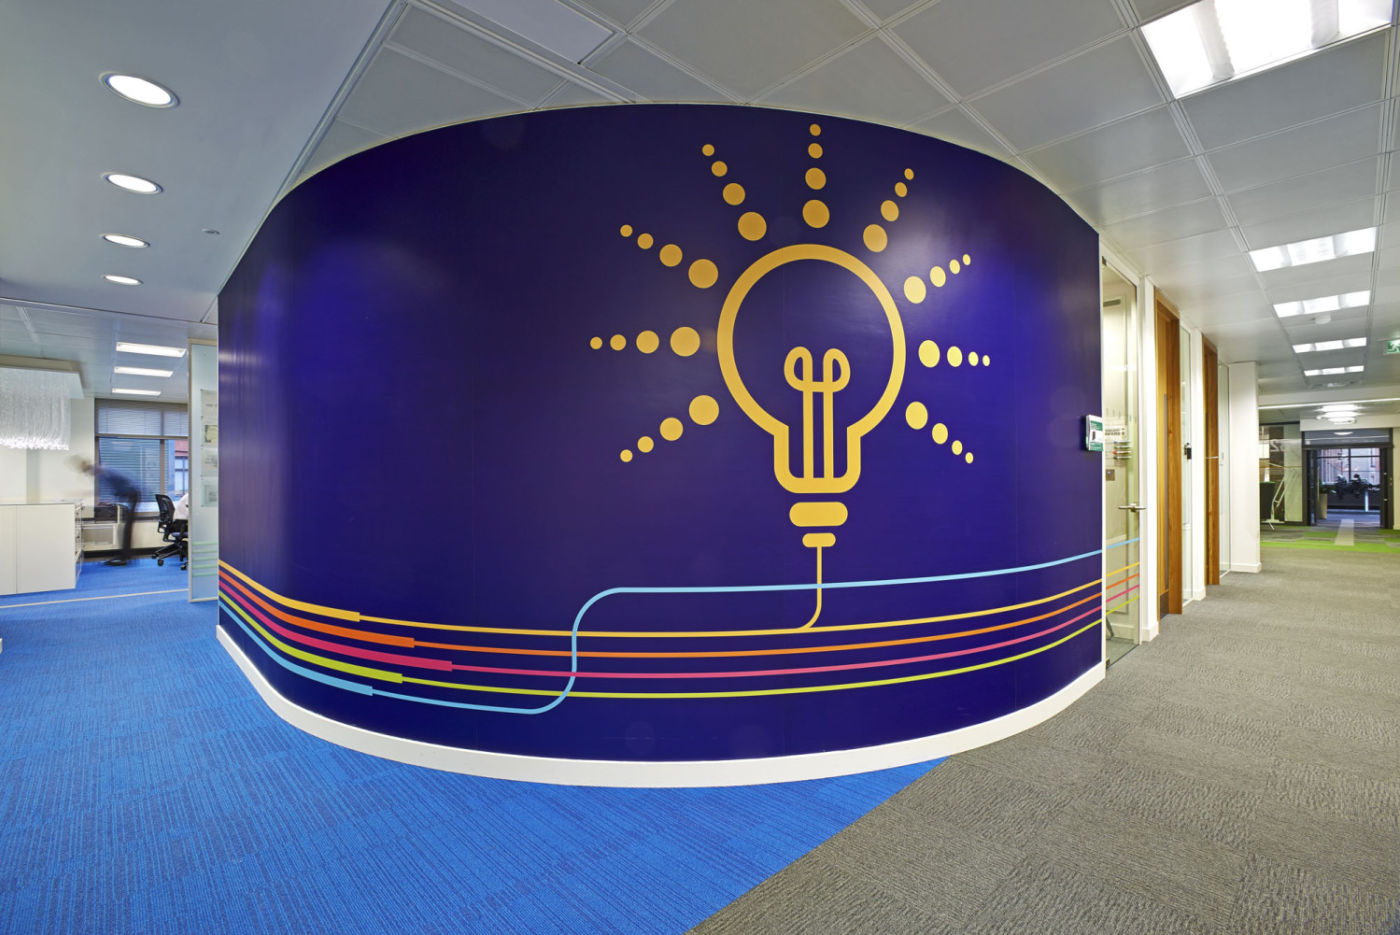 Wall graphic showing light-bulb thought idea